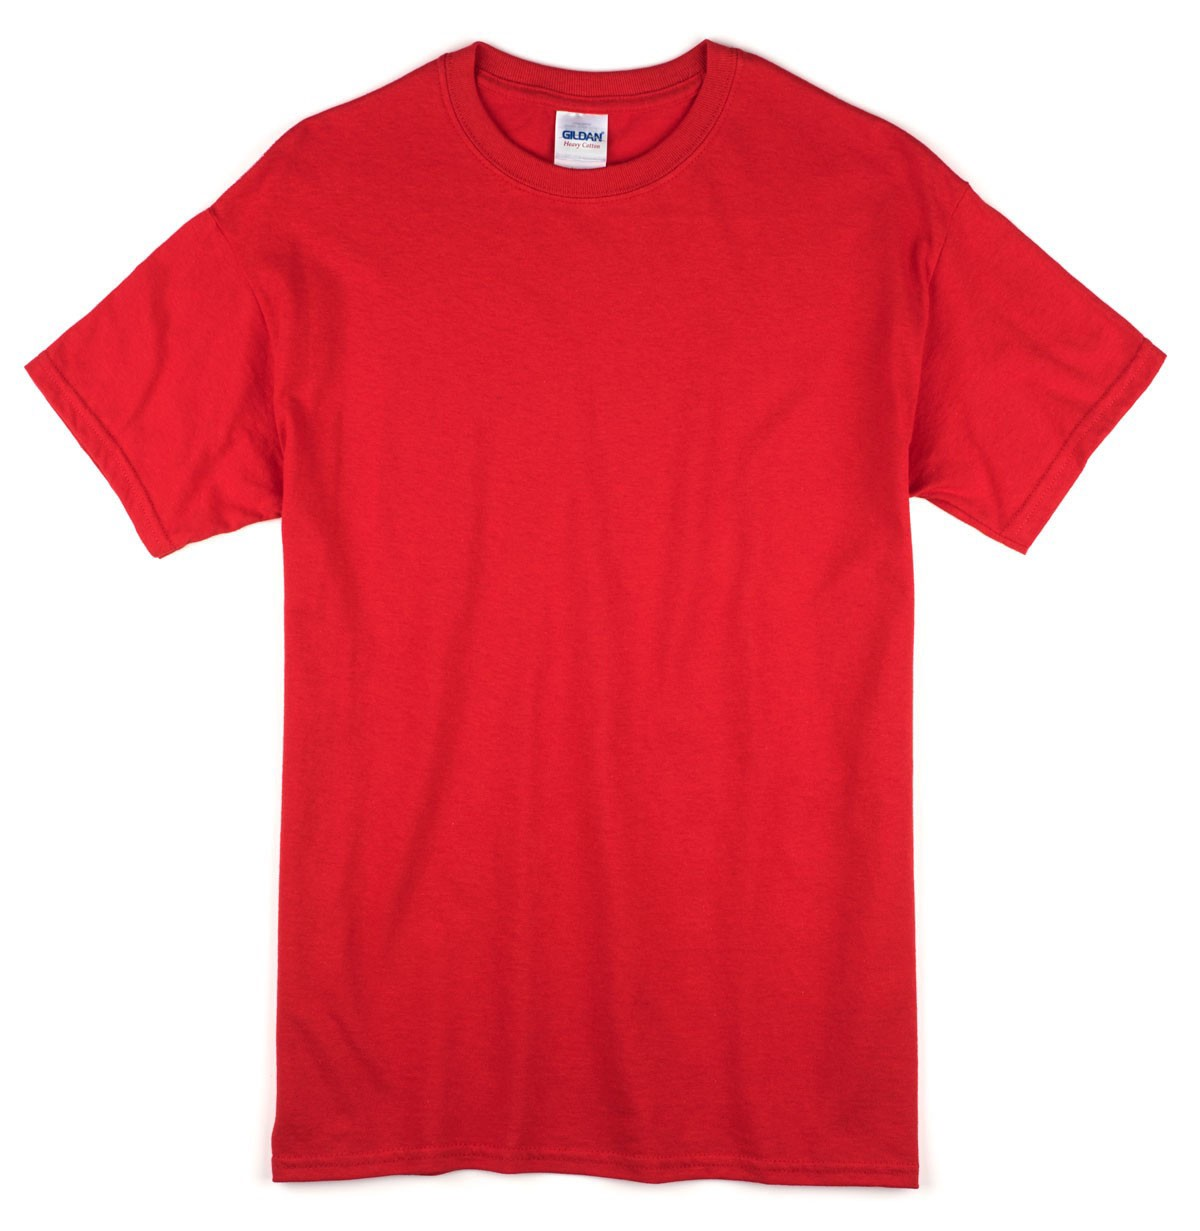 Classic Red t-shirt